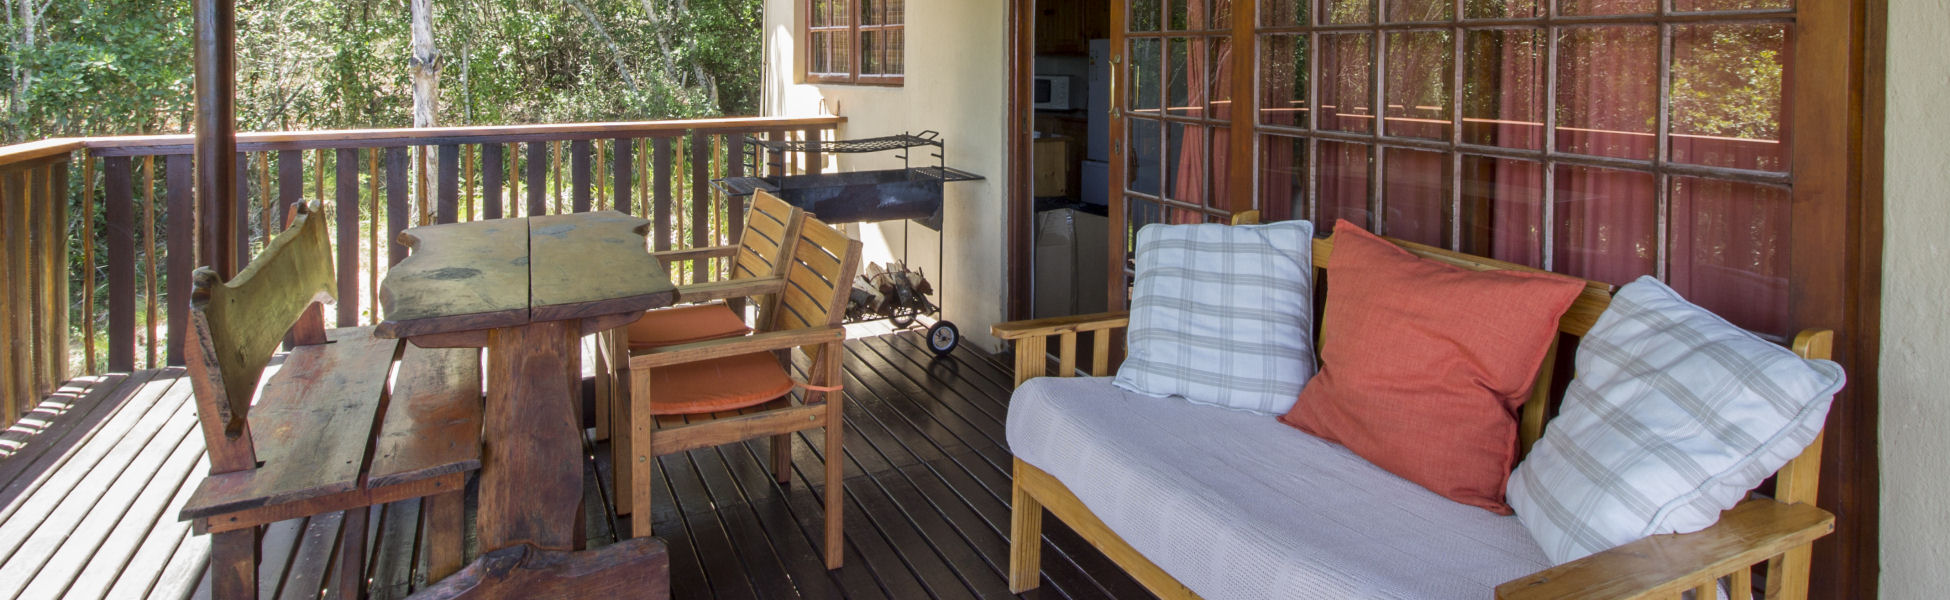 Garden Route Forest Accommodation